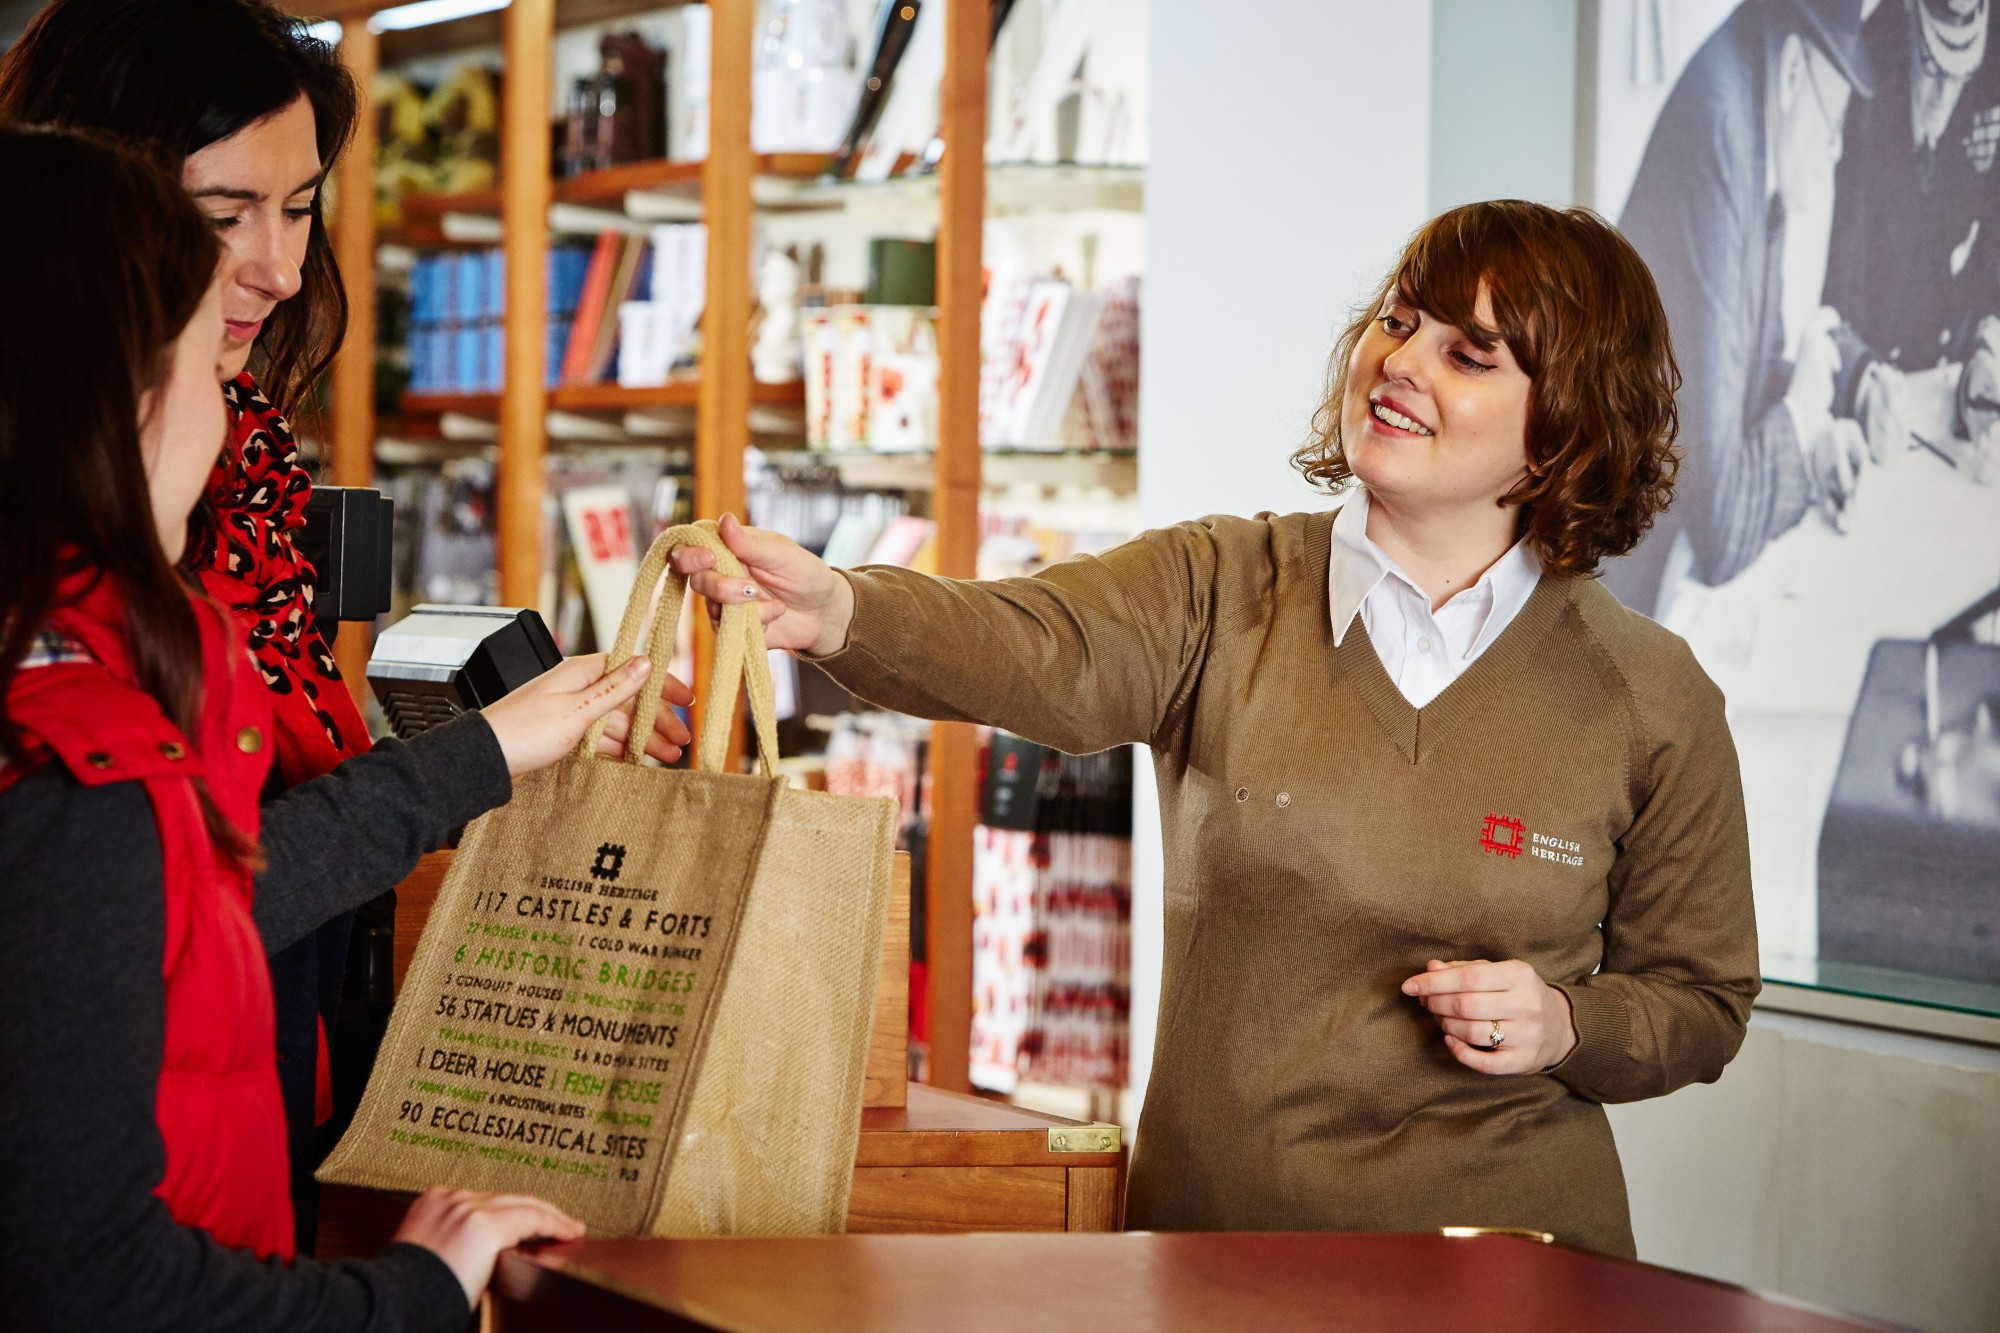 A woman serving someone at an english heritage shop